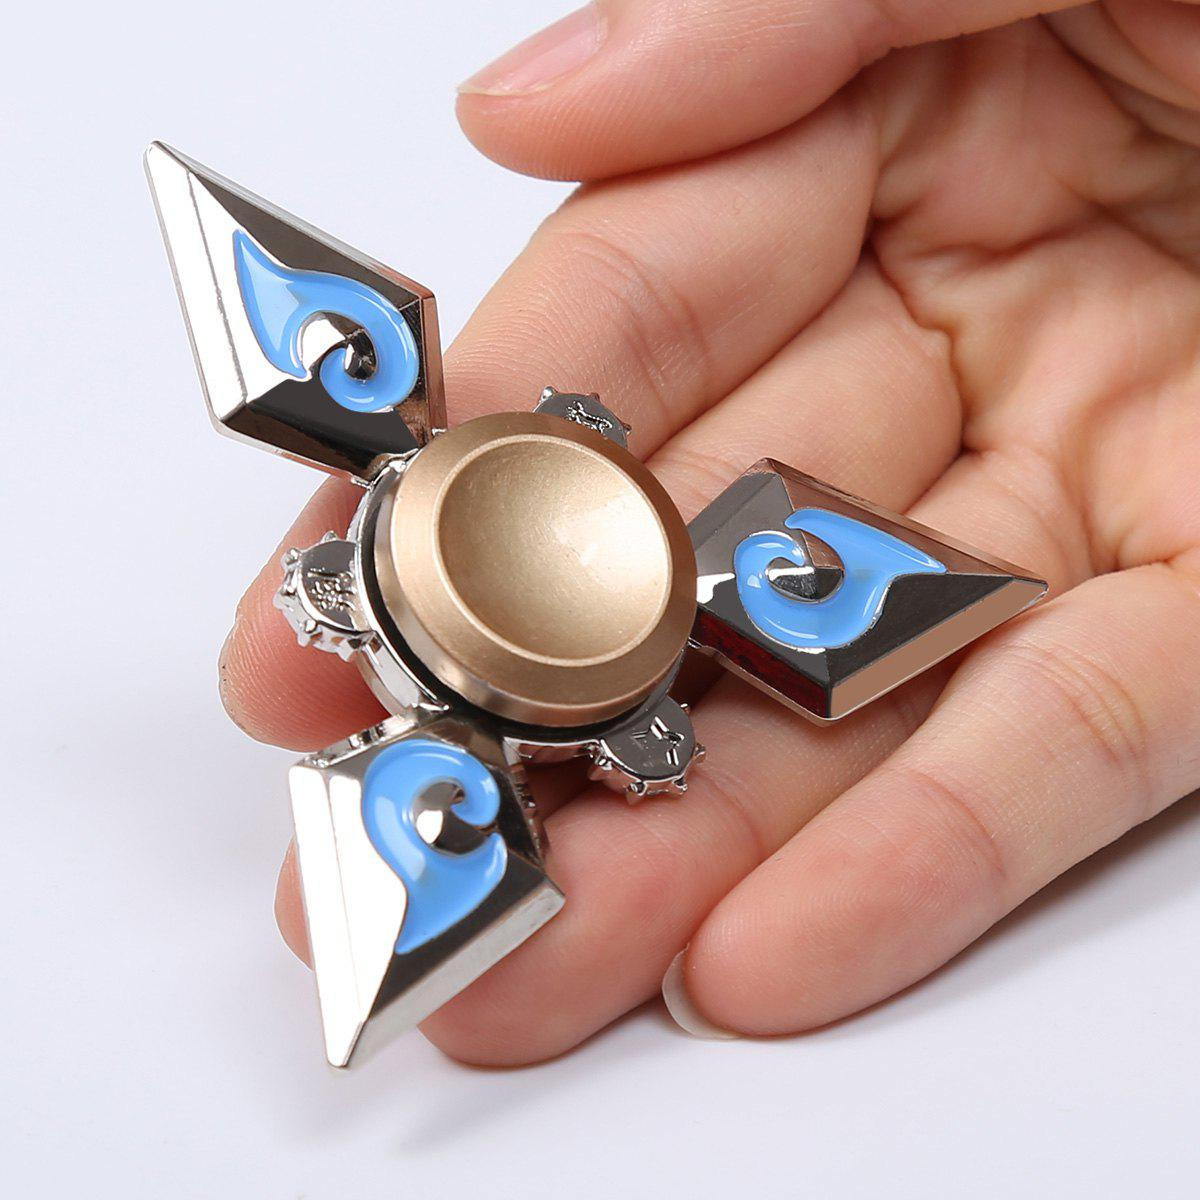 EDC Metal Fidget Hand Tri-Spinner Toy For Relaxing, SILVER ...